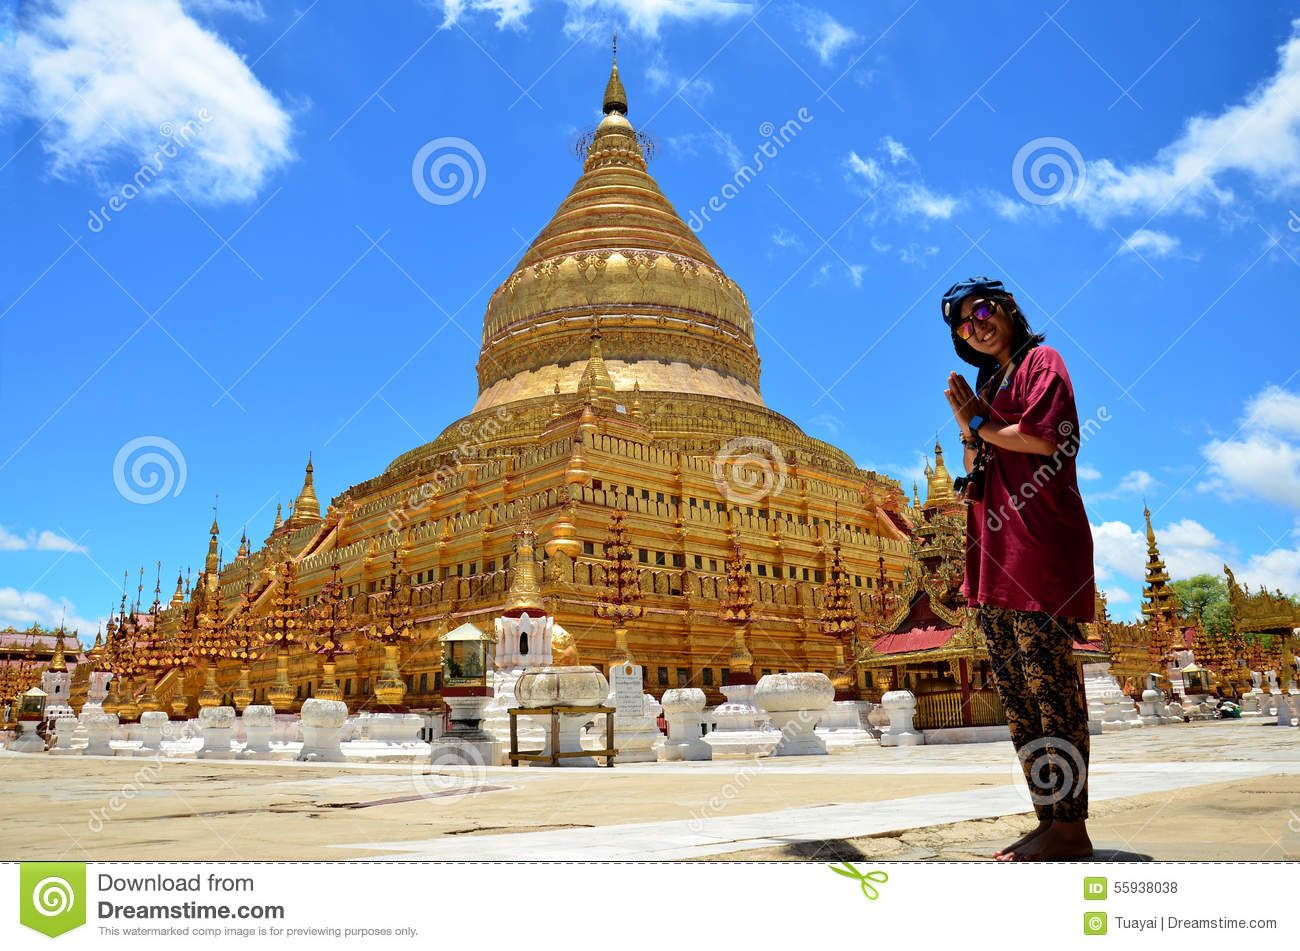 modest town buddhist single women A guide to the best hotels, restaurants and experiences in the holy buddhist town of bodhgaya, bihar.